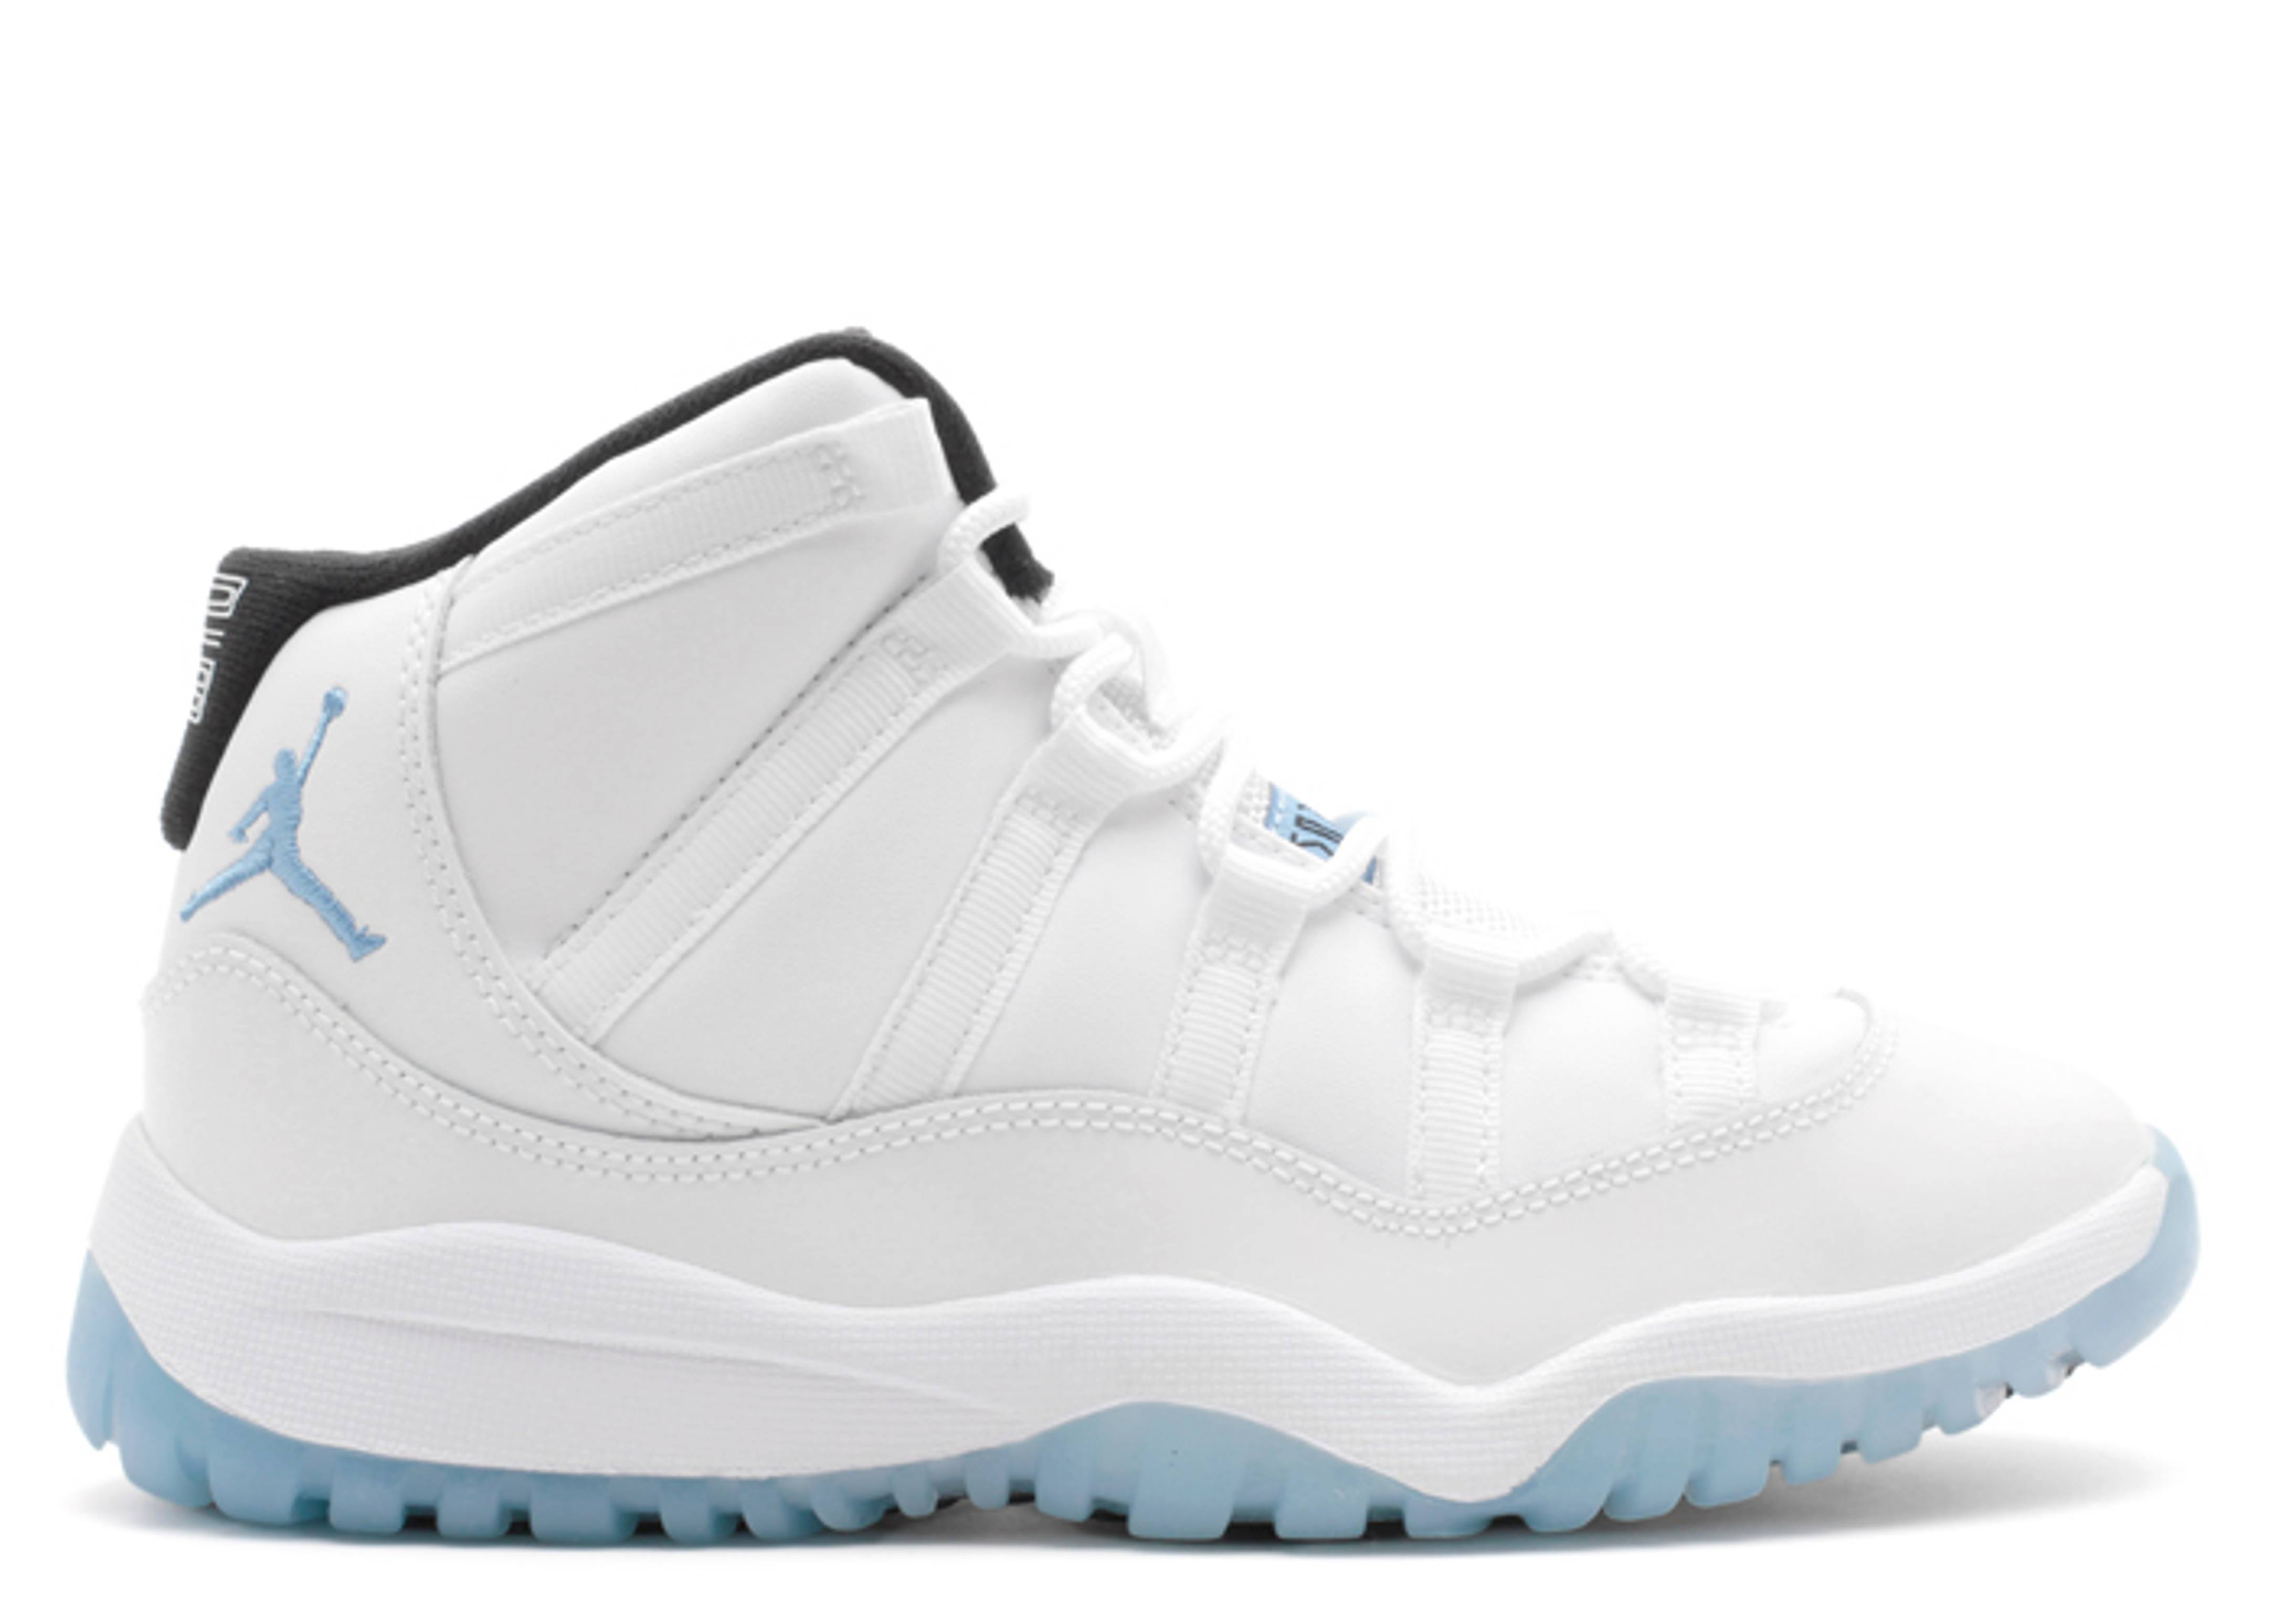 jordan shoes 11 legend blues owned meaning 815723